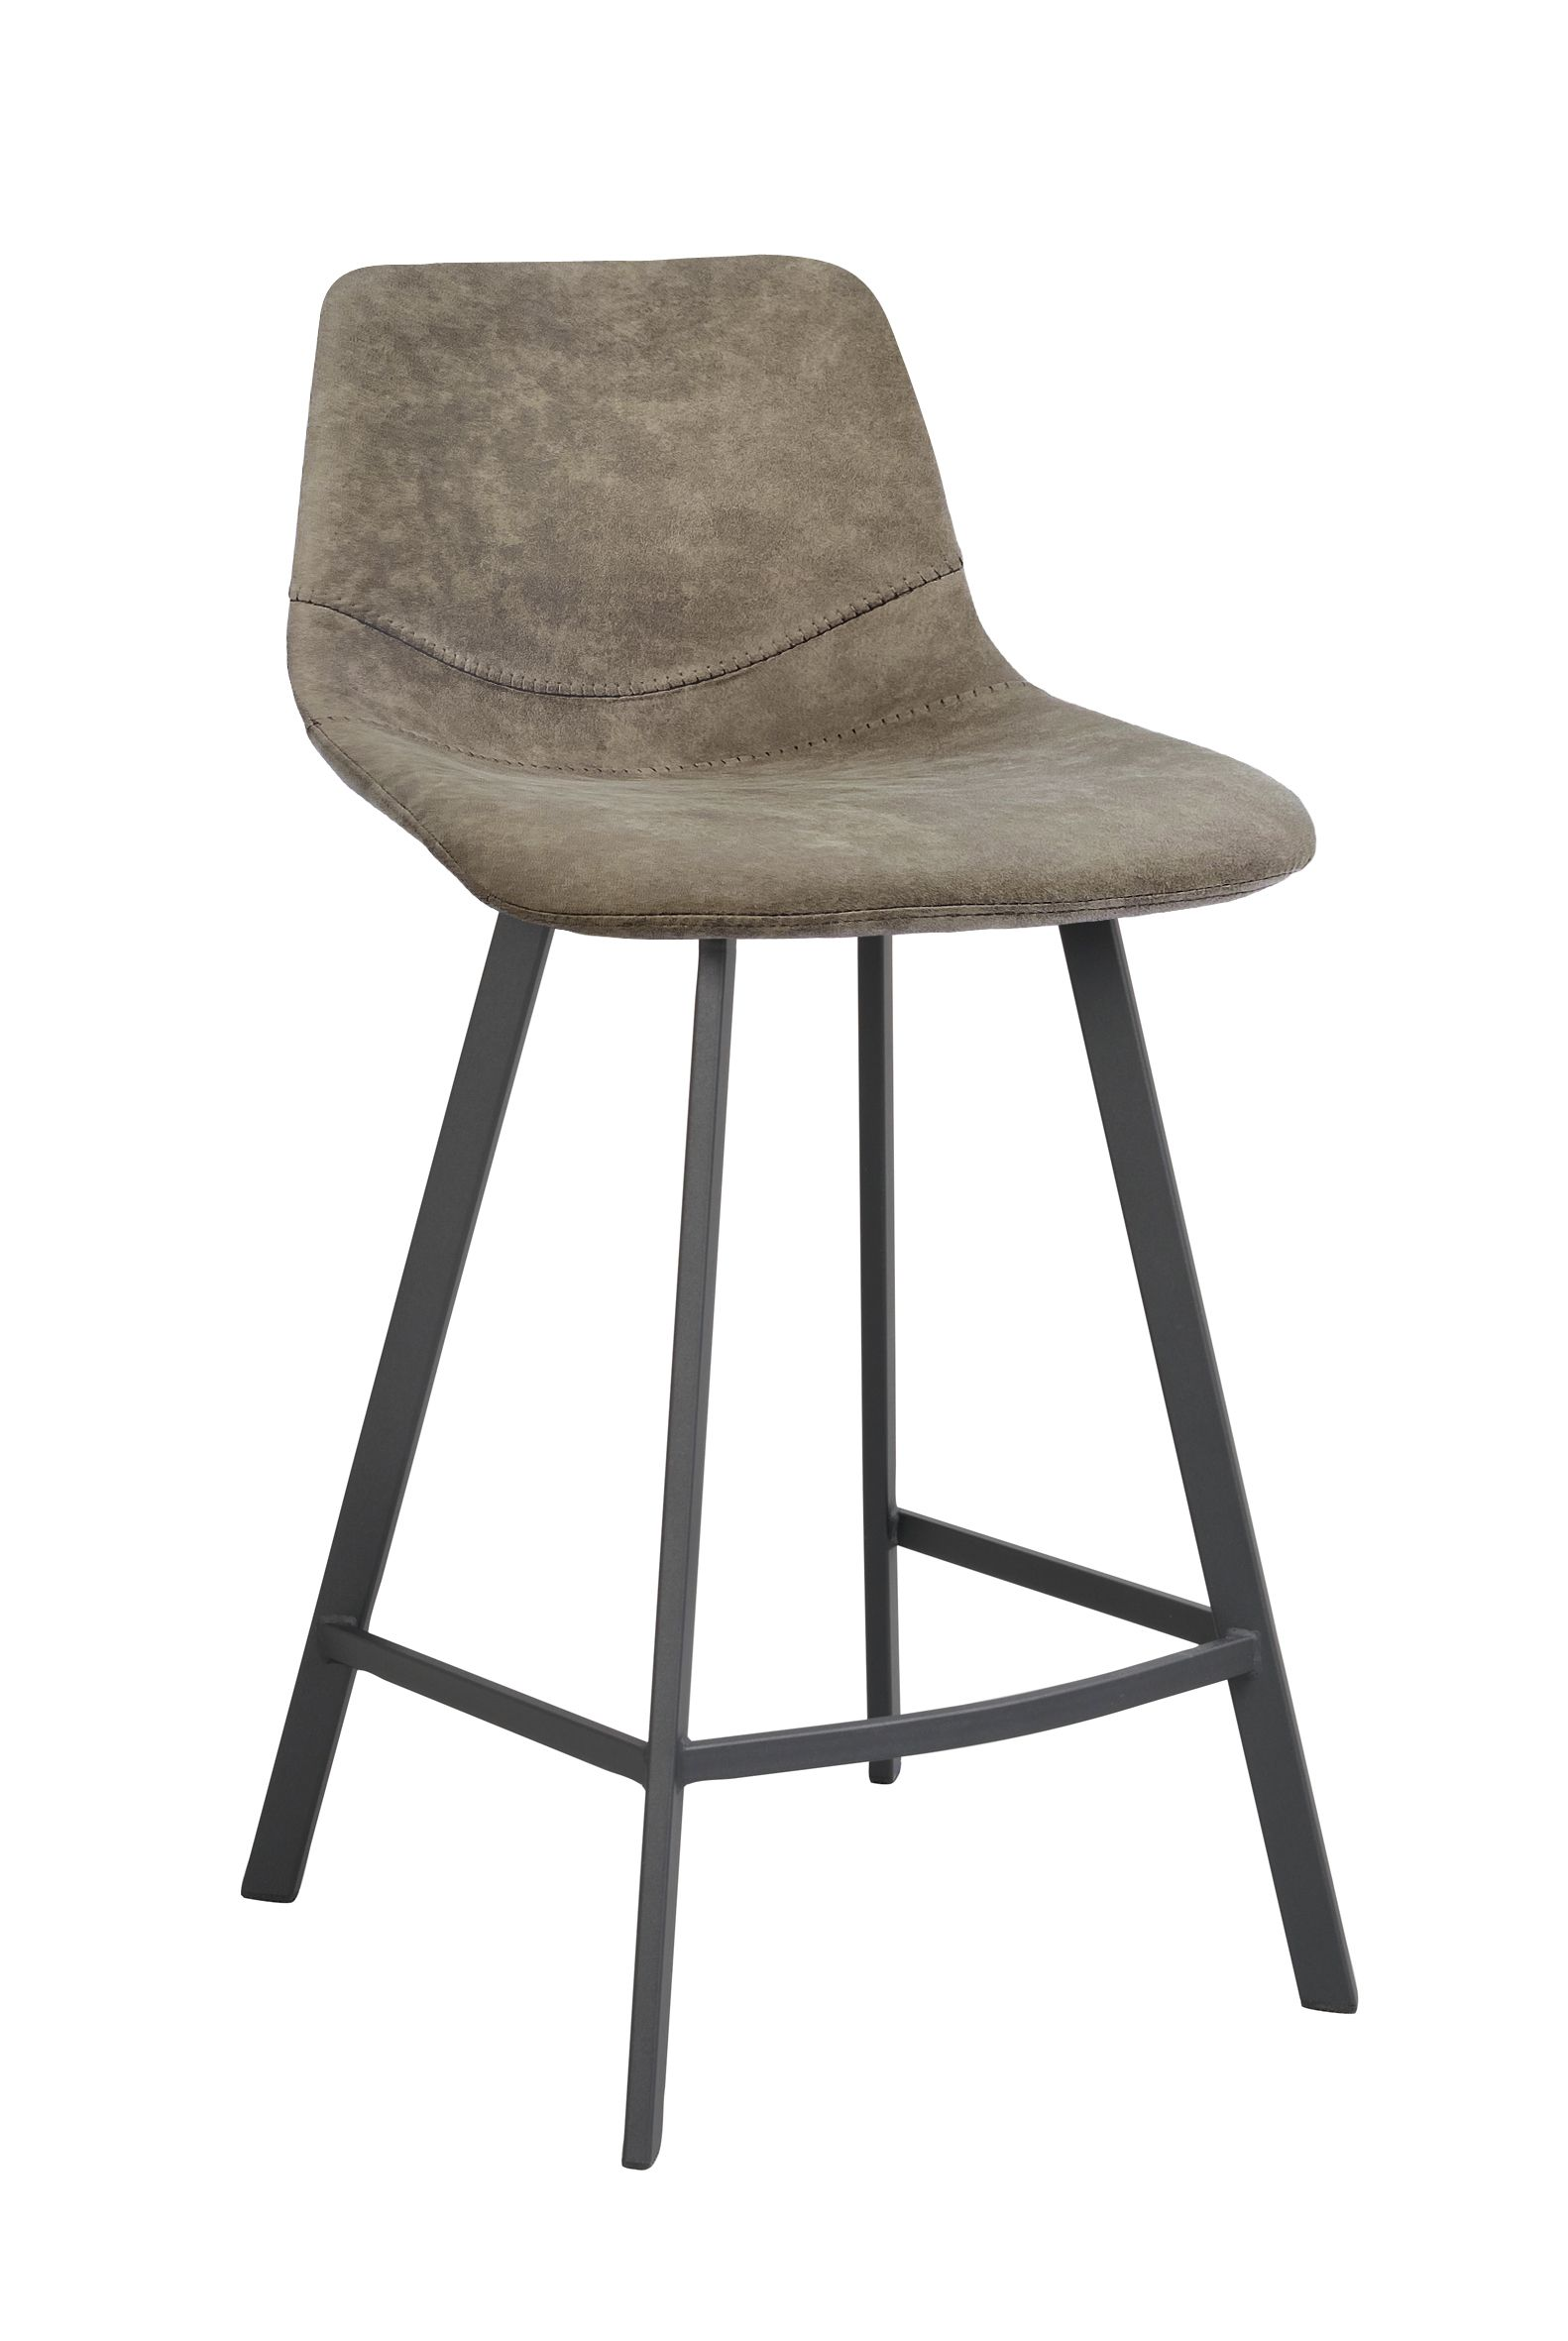 AUBURN Bar Stool Putty PU Leather